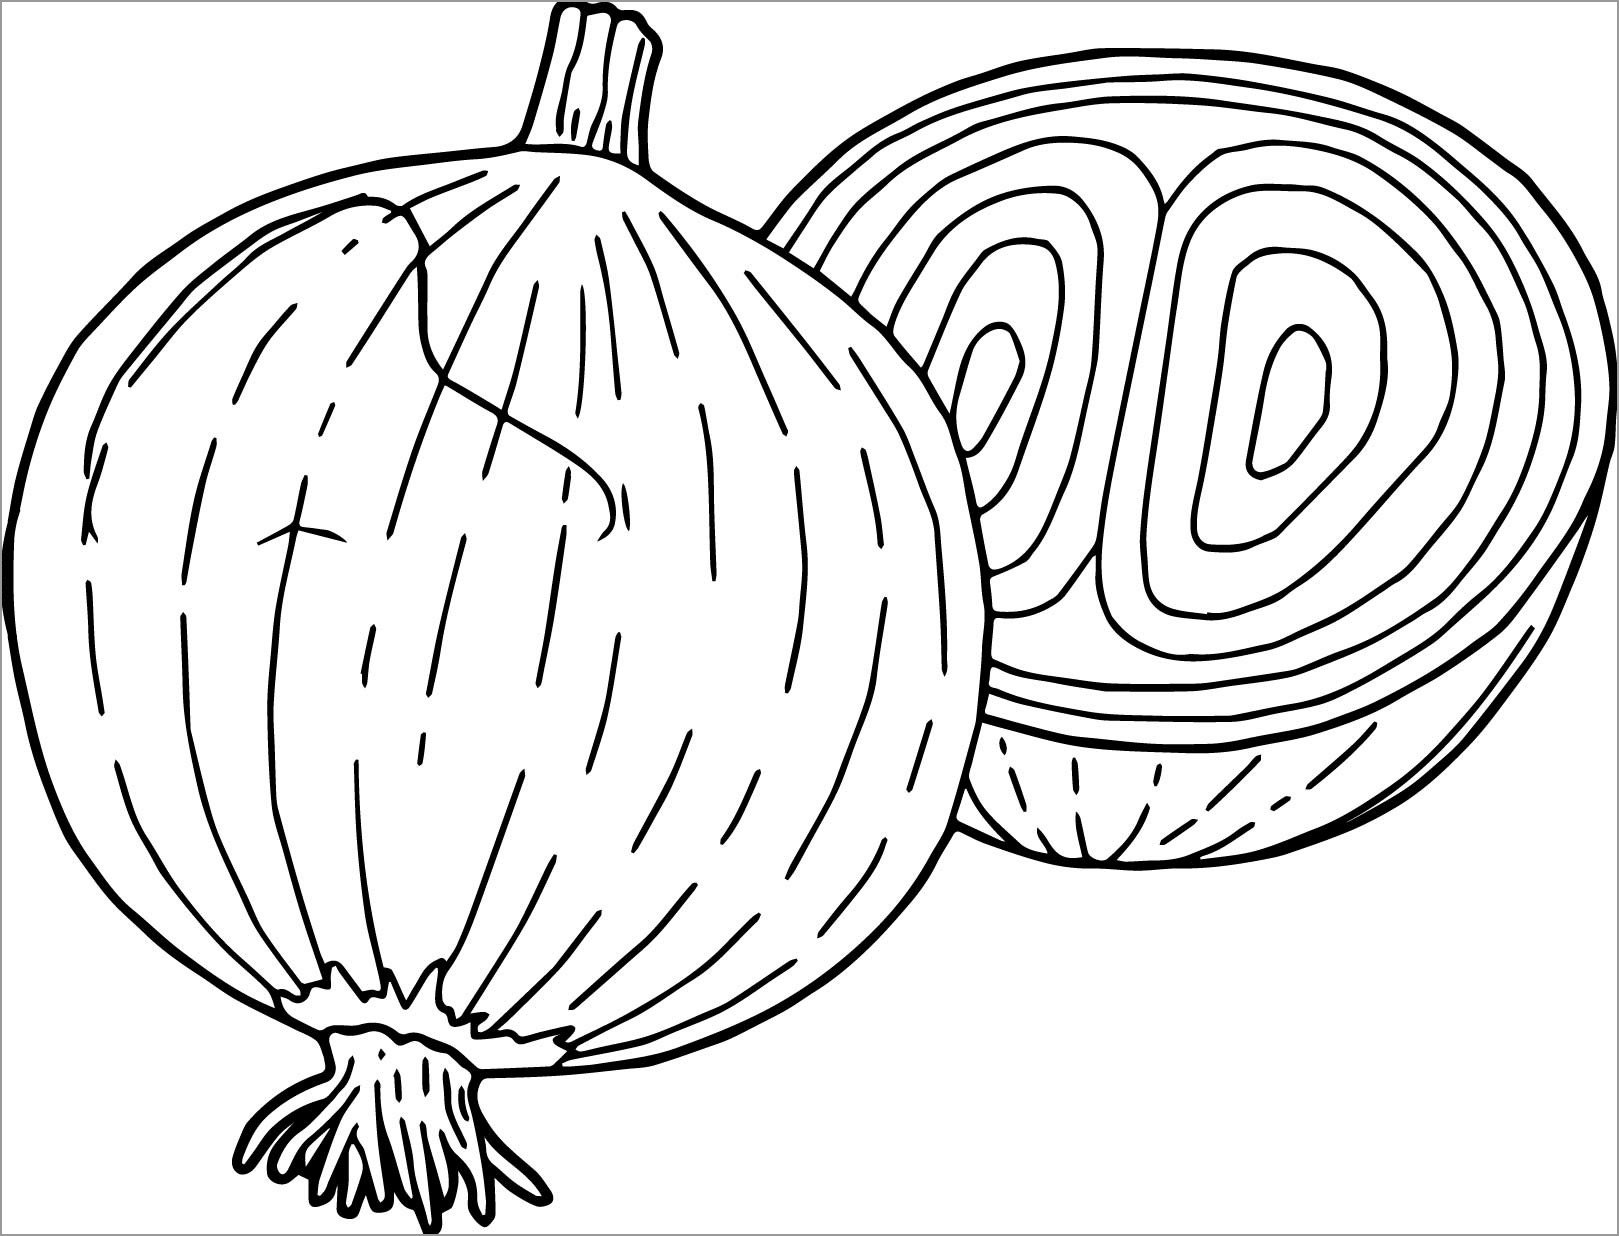 Sliced Onion Coloring Page